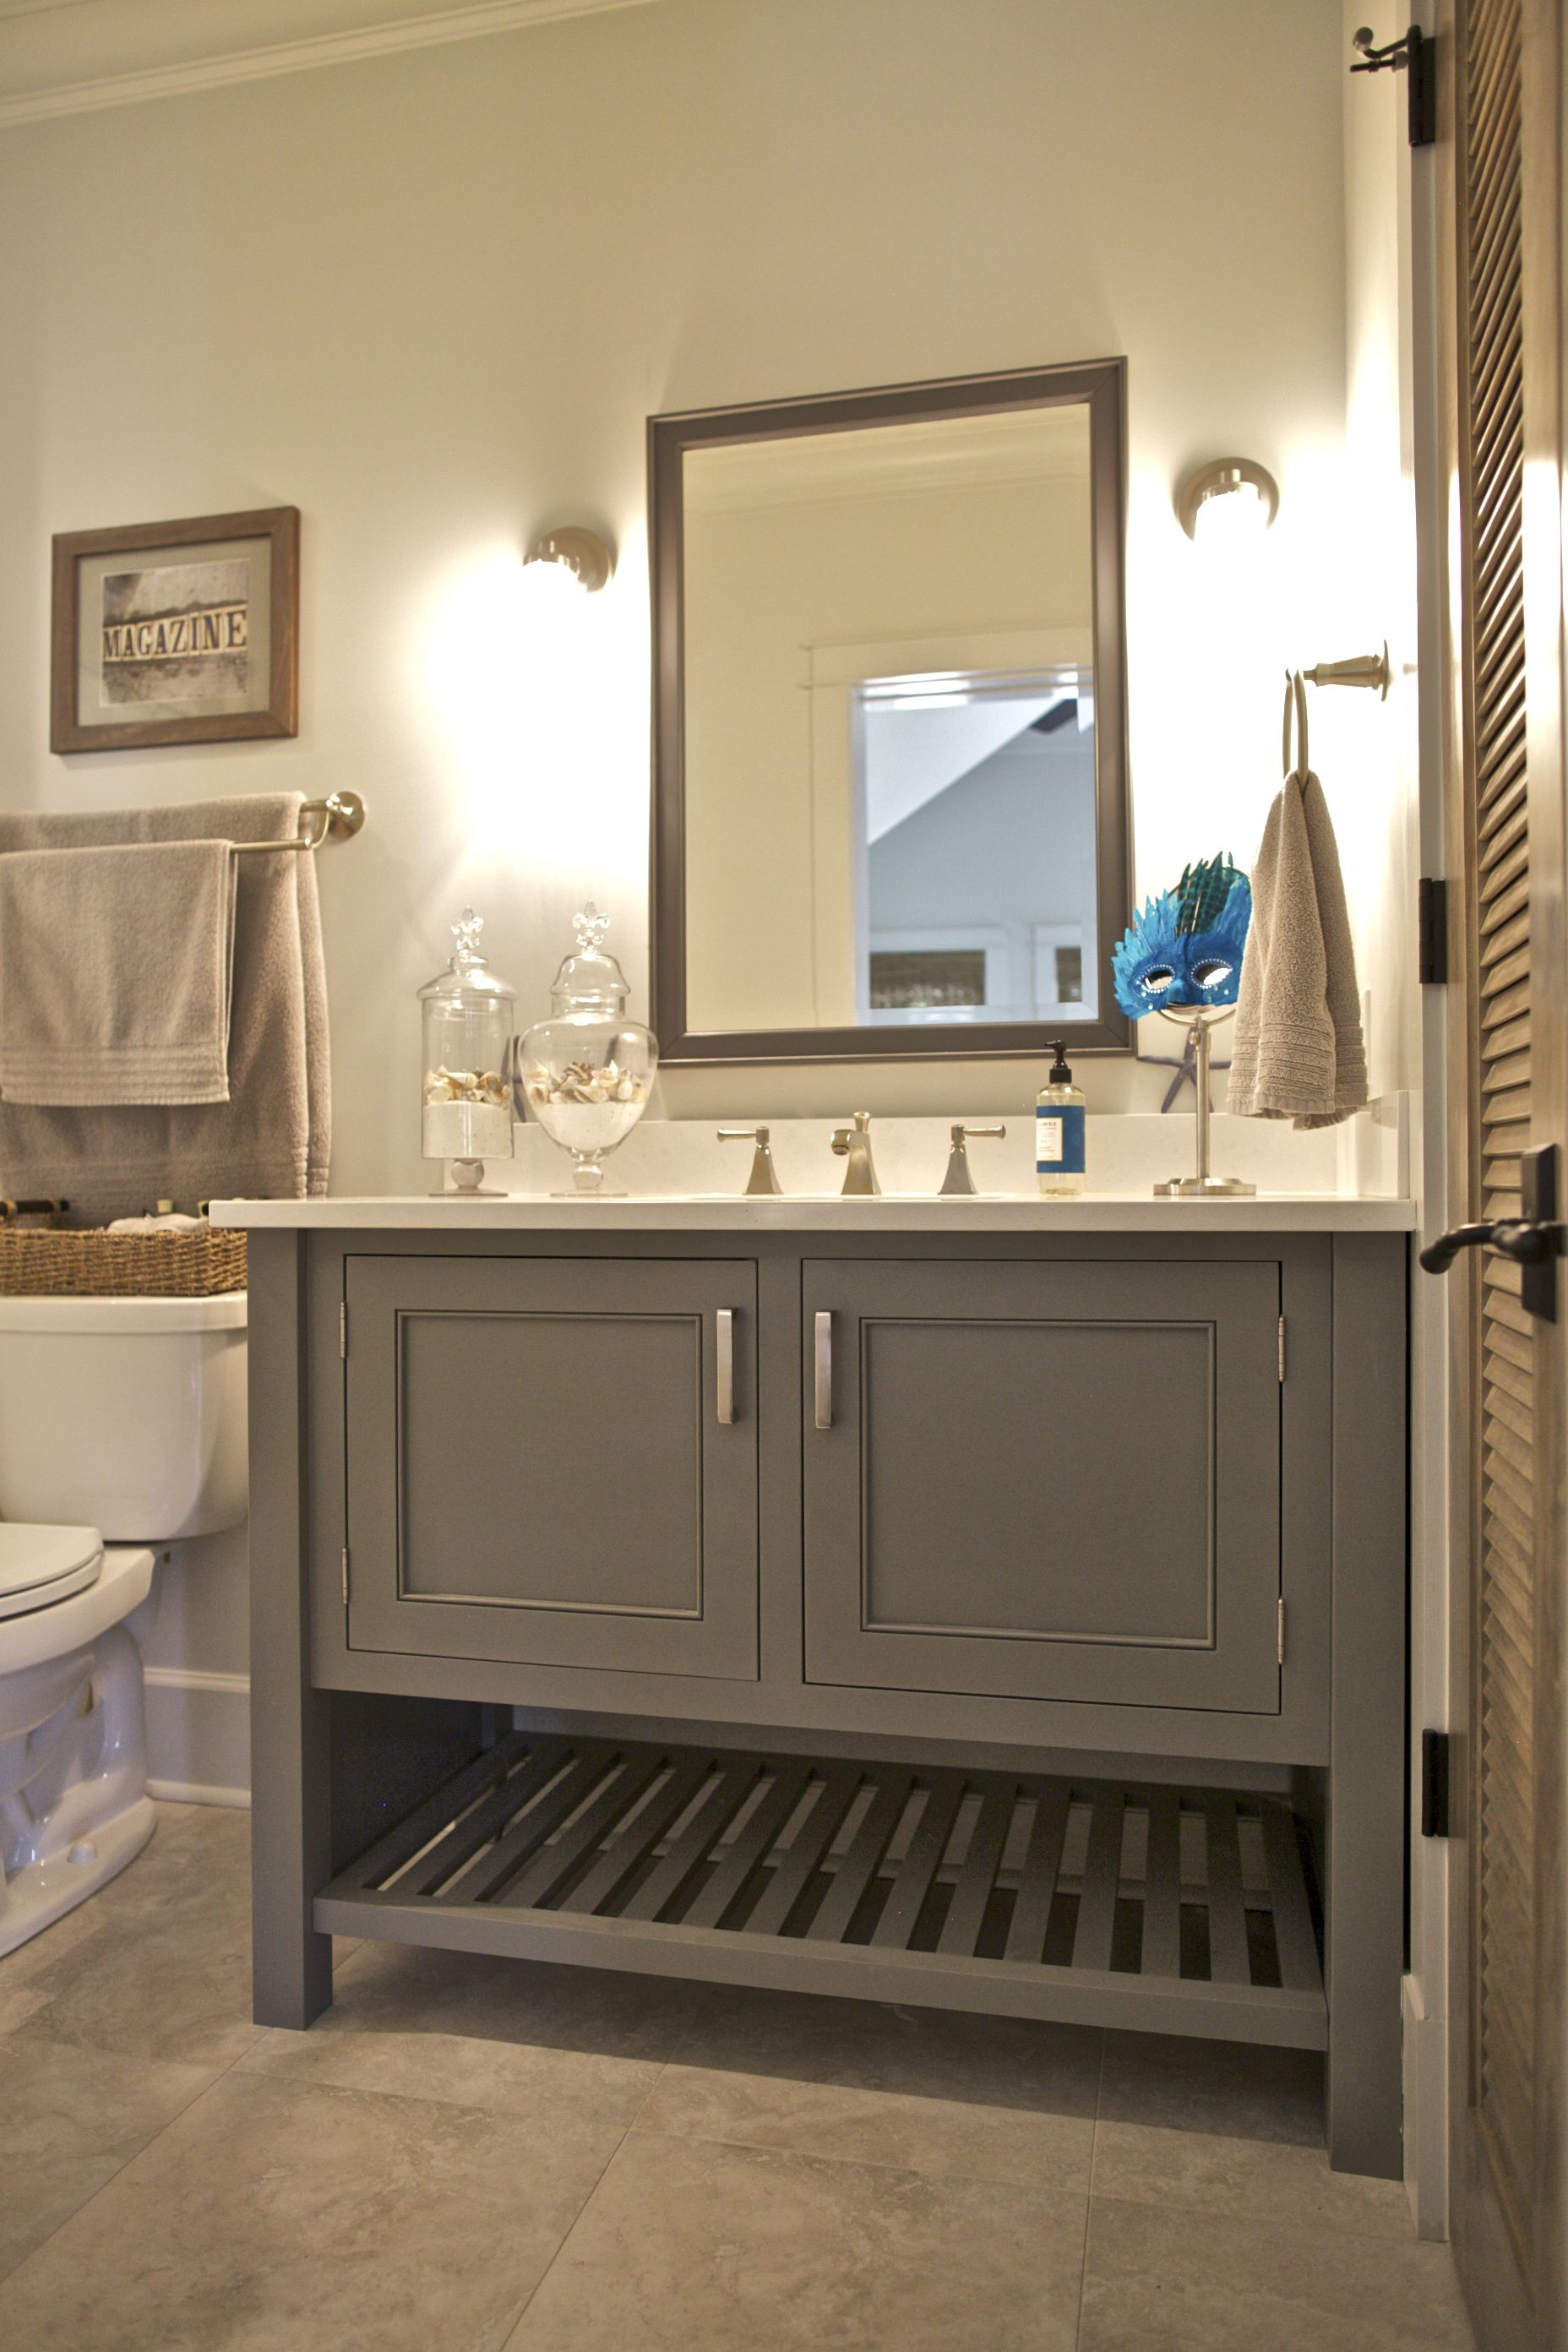 This Bathroom Features A Painted Maple Inset Cabinet Vanity In A Popular Warm Gray Color Rustic Bathroom Vanities Grey Bathrooms Small Bathroom Colors